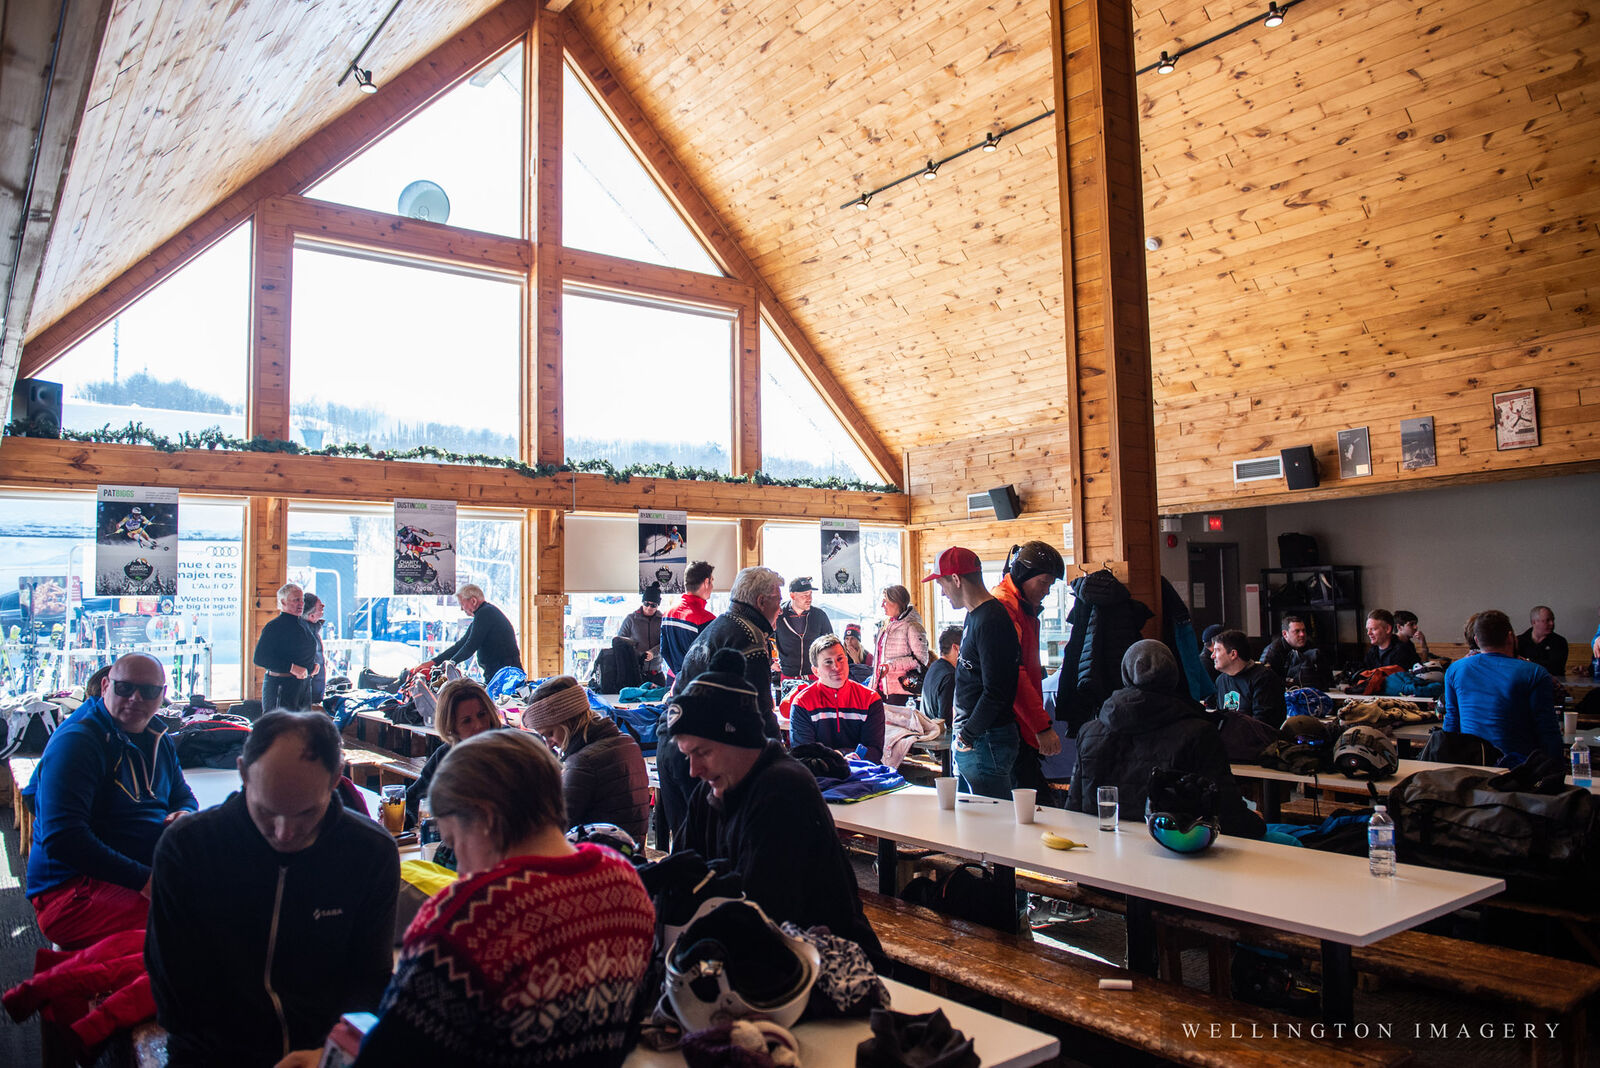 ©WELLINGTONIMAGERY 20190228 115108 BGCO Skiathon 0140 WM 2048px